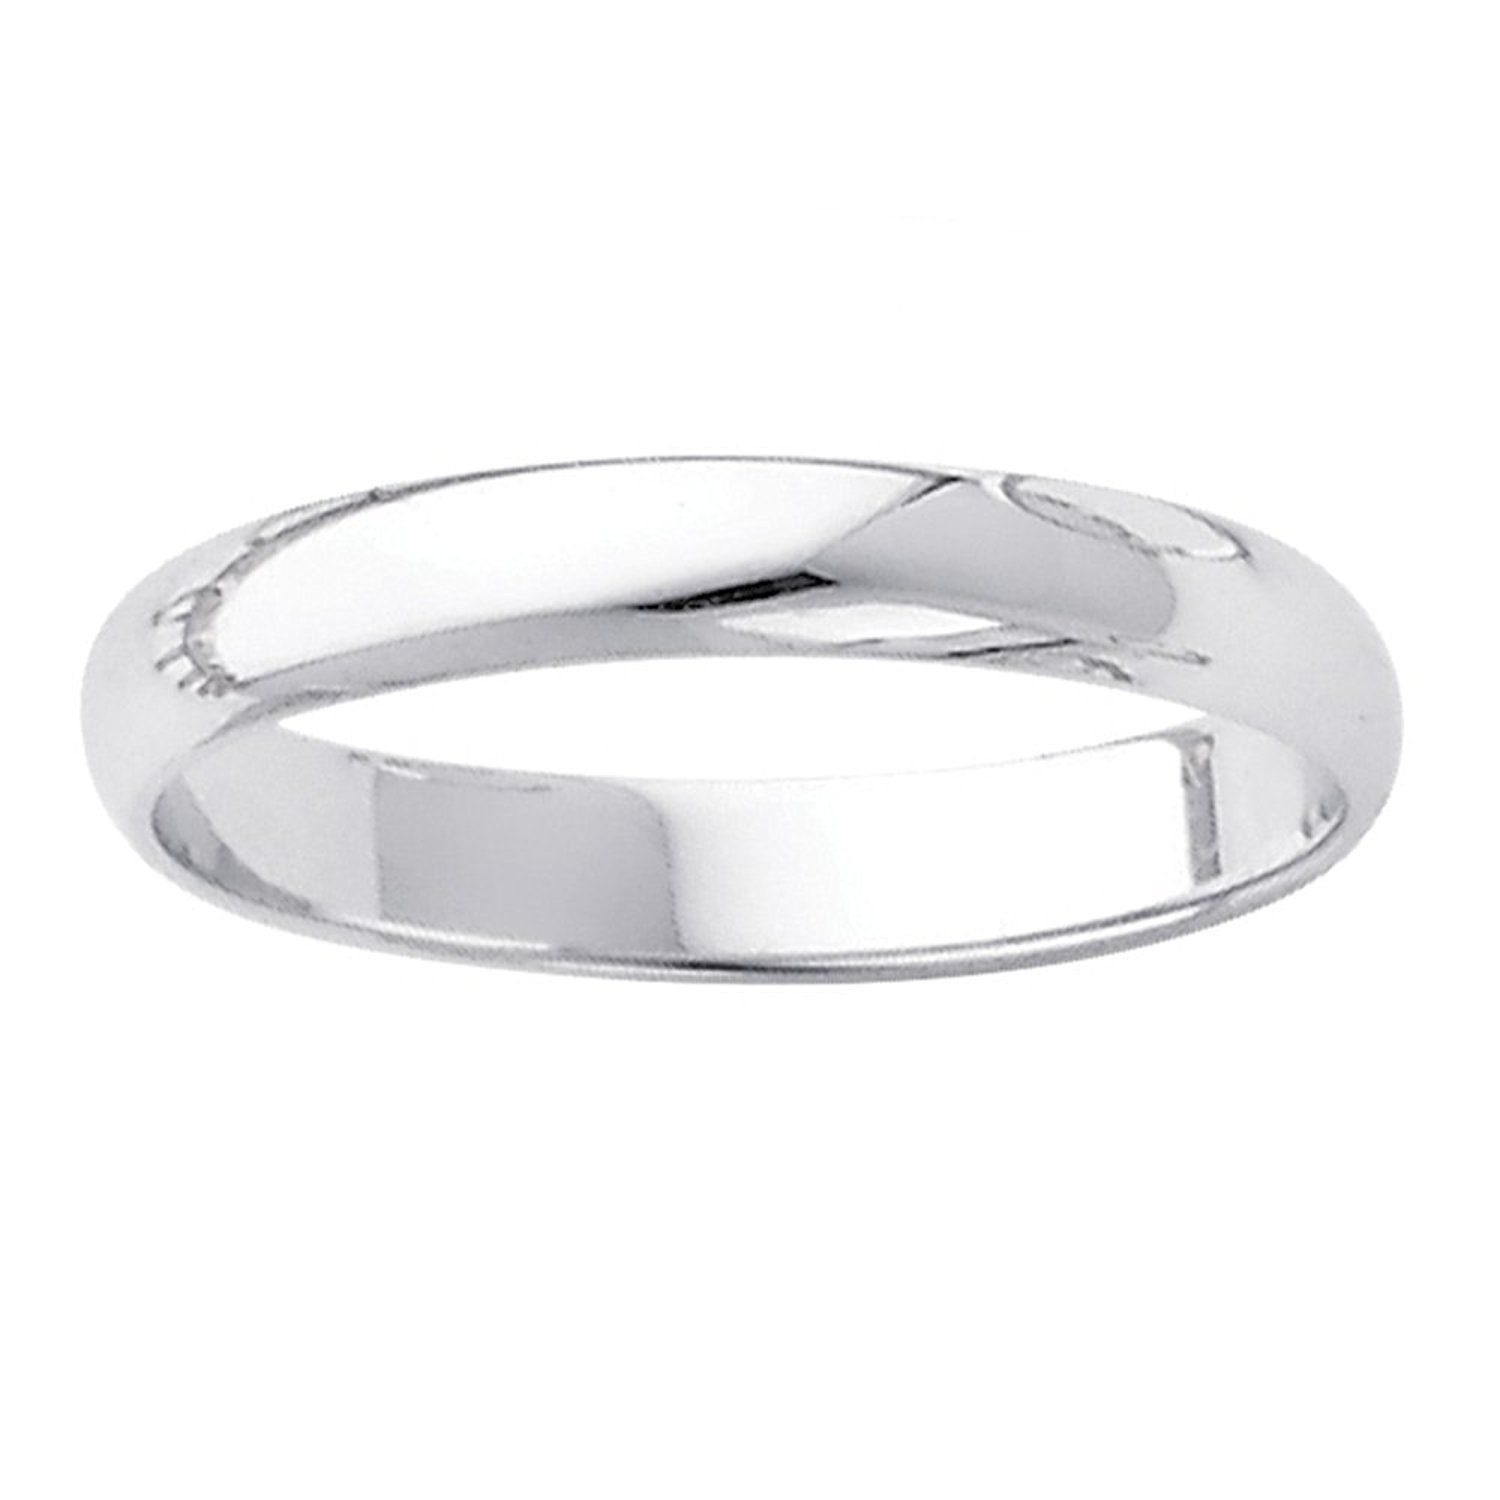 Dainty 10k White Gold Endless Classic Band Dainty 3mm Wedding Ring For Women See This Great Image Wedding Rings Wedding Rings For Women Gold Rings Jewelry